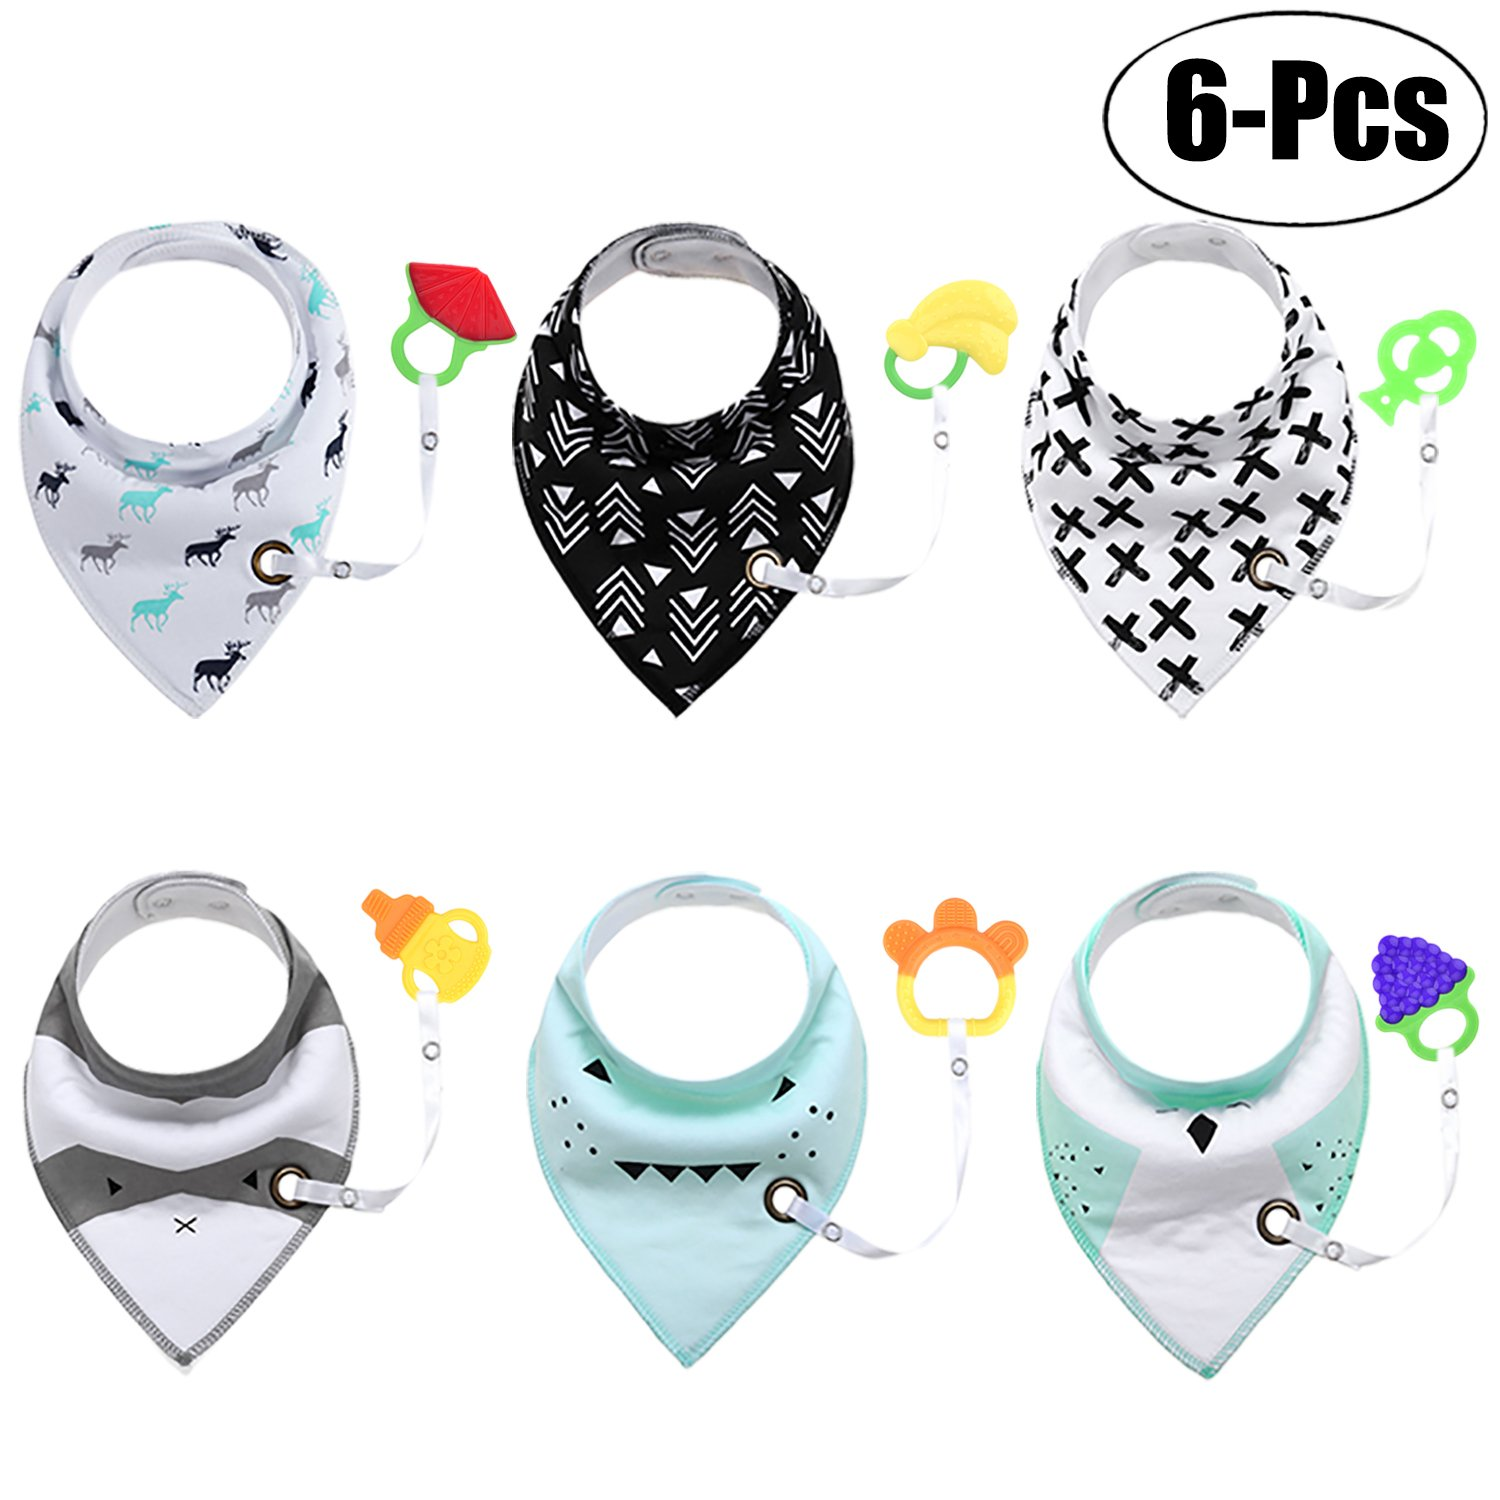 Zoylink 6PCS Baby Cotton Bib Baby Bandana Cute Print Soft Absorbent Drool Bib with Baby Teether Toy